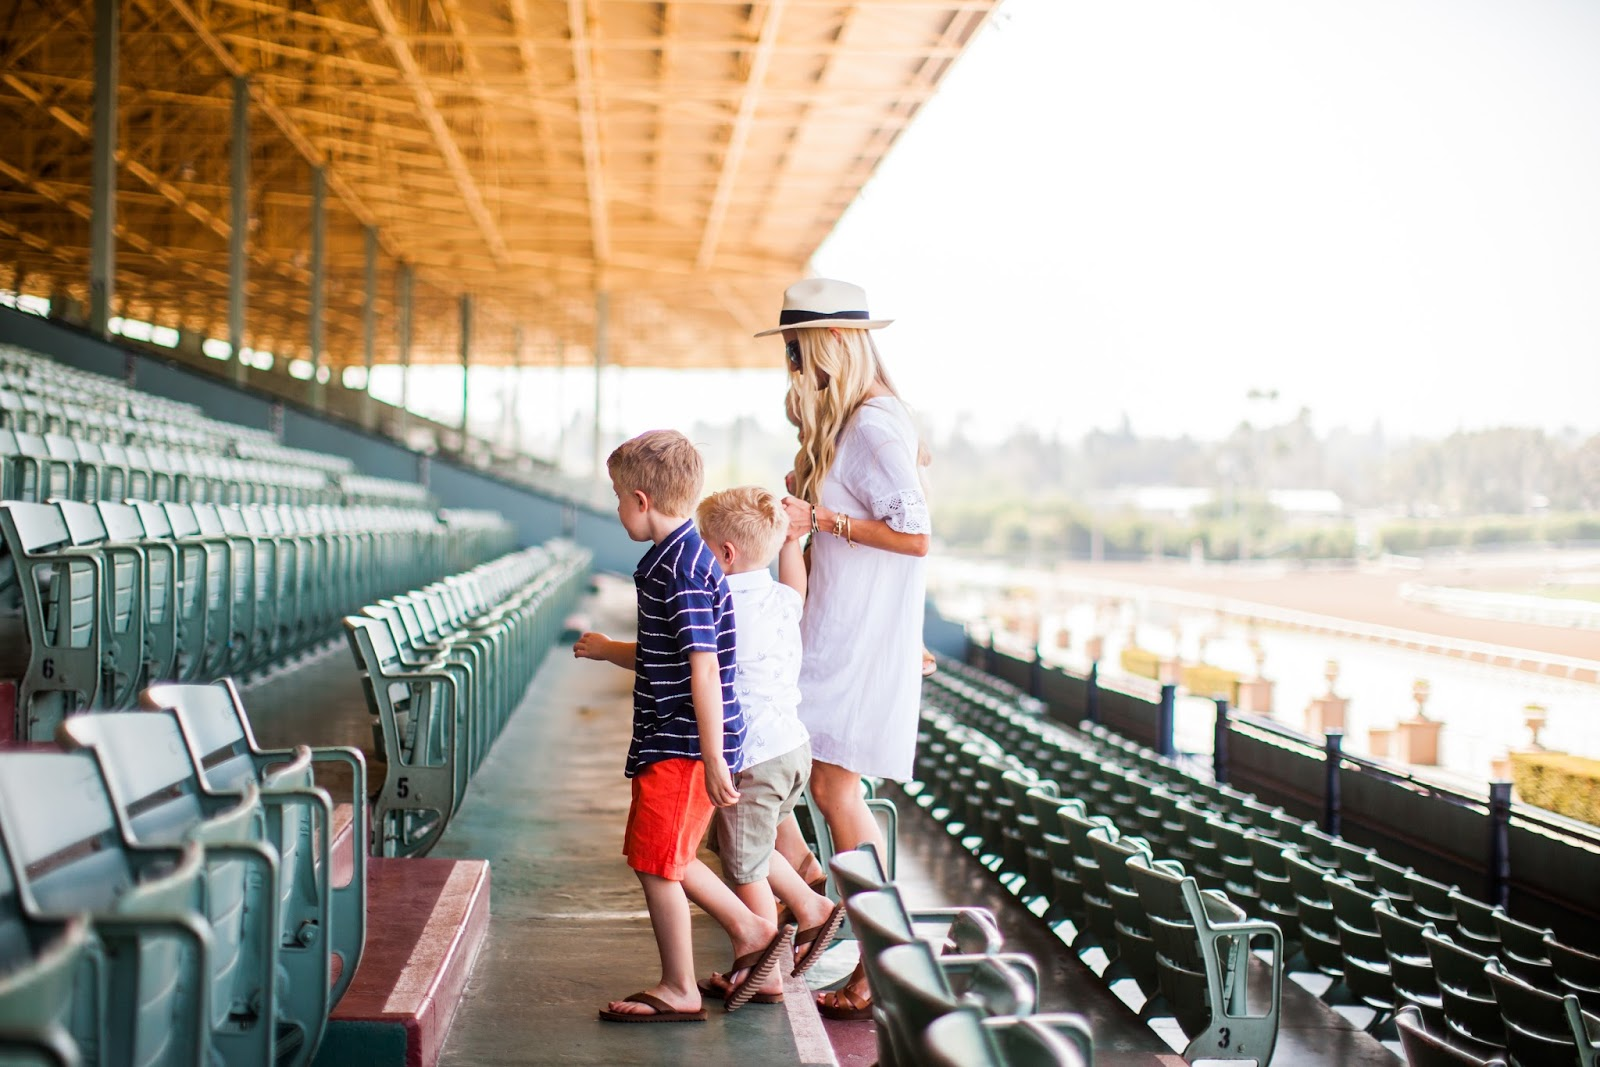 TOP 10 SPOTS TO VISIT WITH KIDS THIS SUMMER IN LOS ANGELES